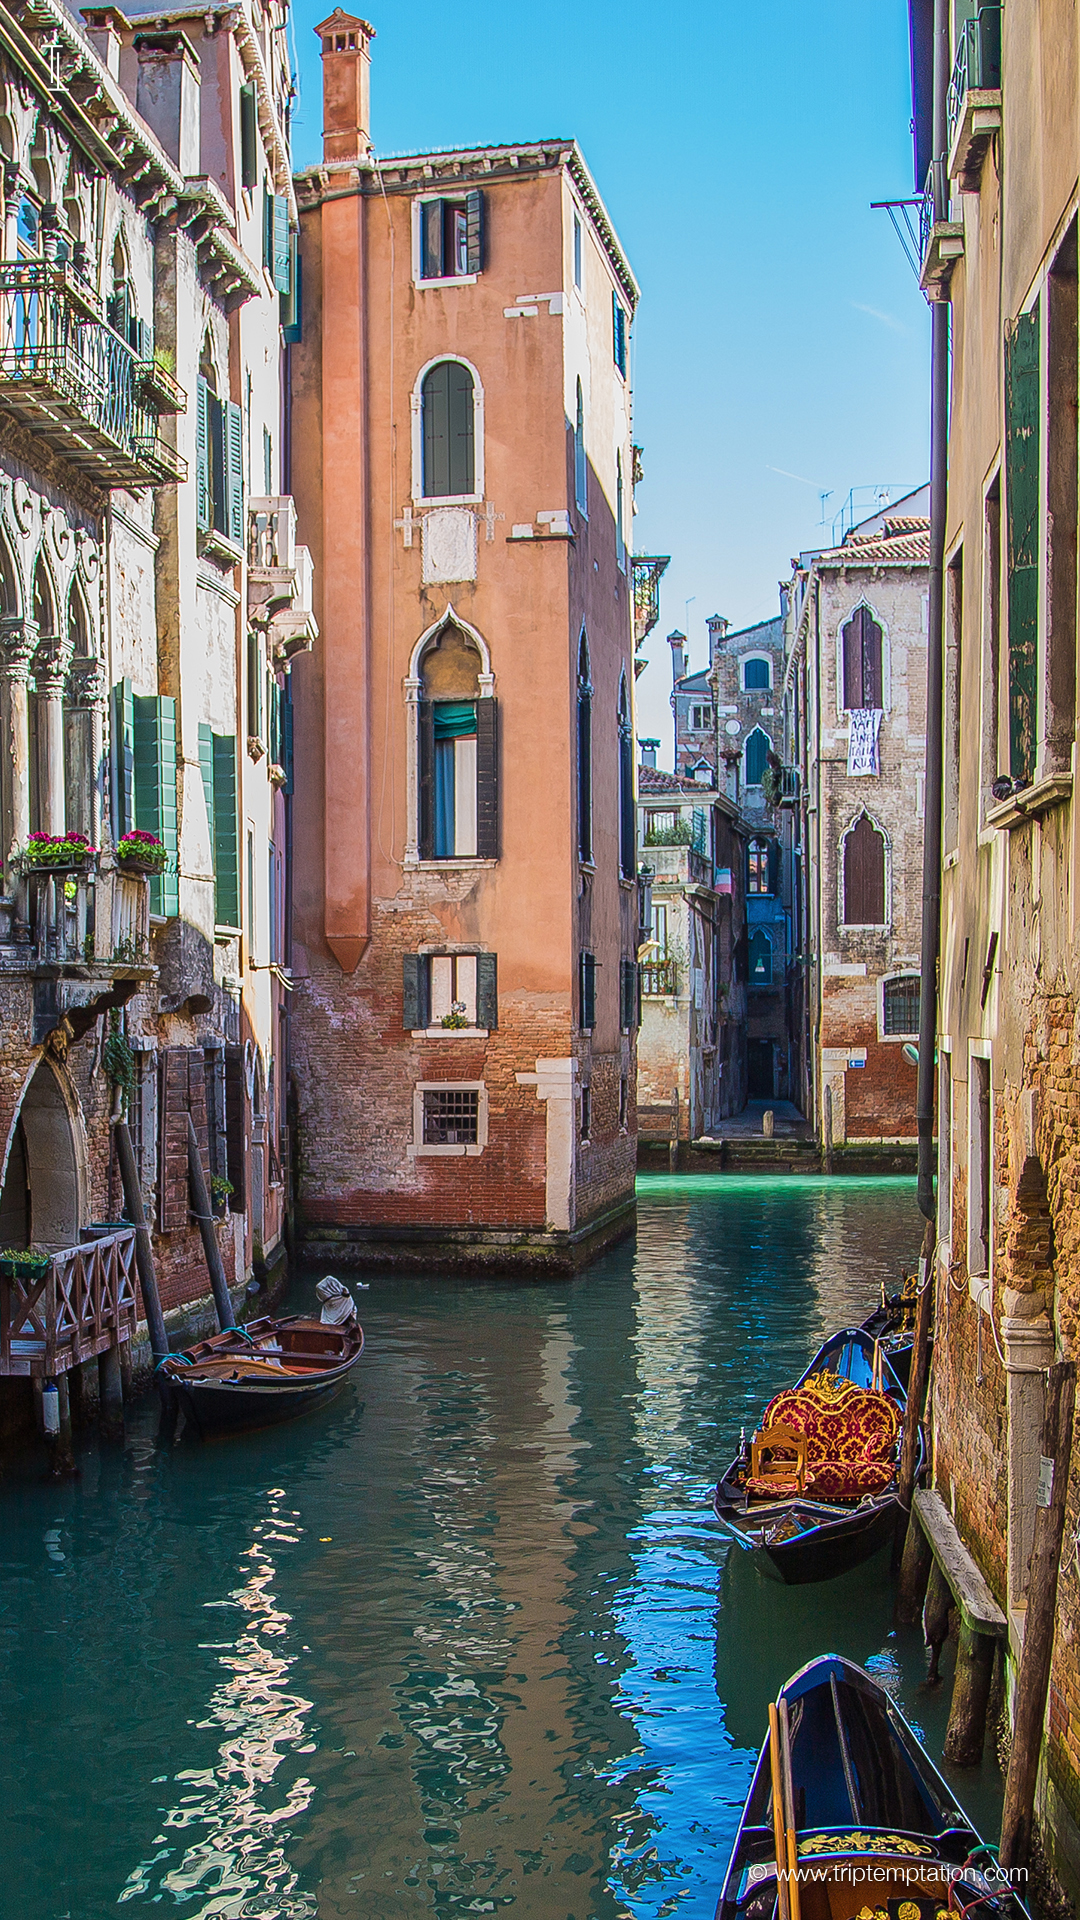 Download Canals of Venice iPhone 6 Plus 1080x1920